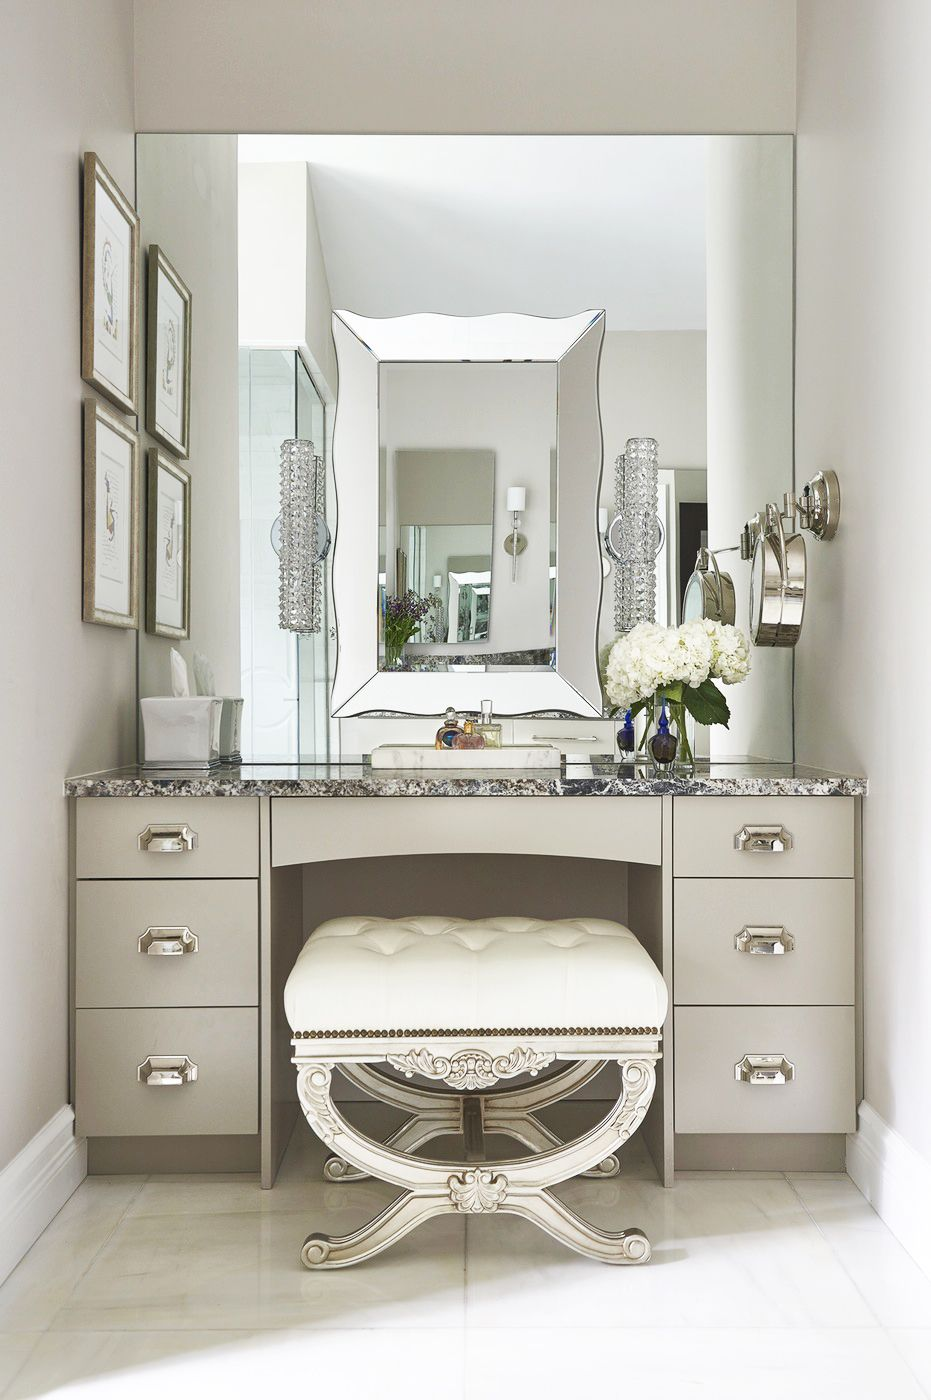 Impeccable Style Get The Designer Look In Your Home With These Easy Tricks Dressing Table Design Room Design Dressing Room Design